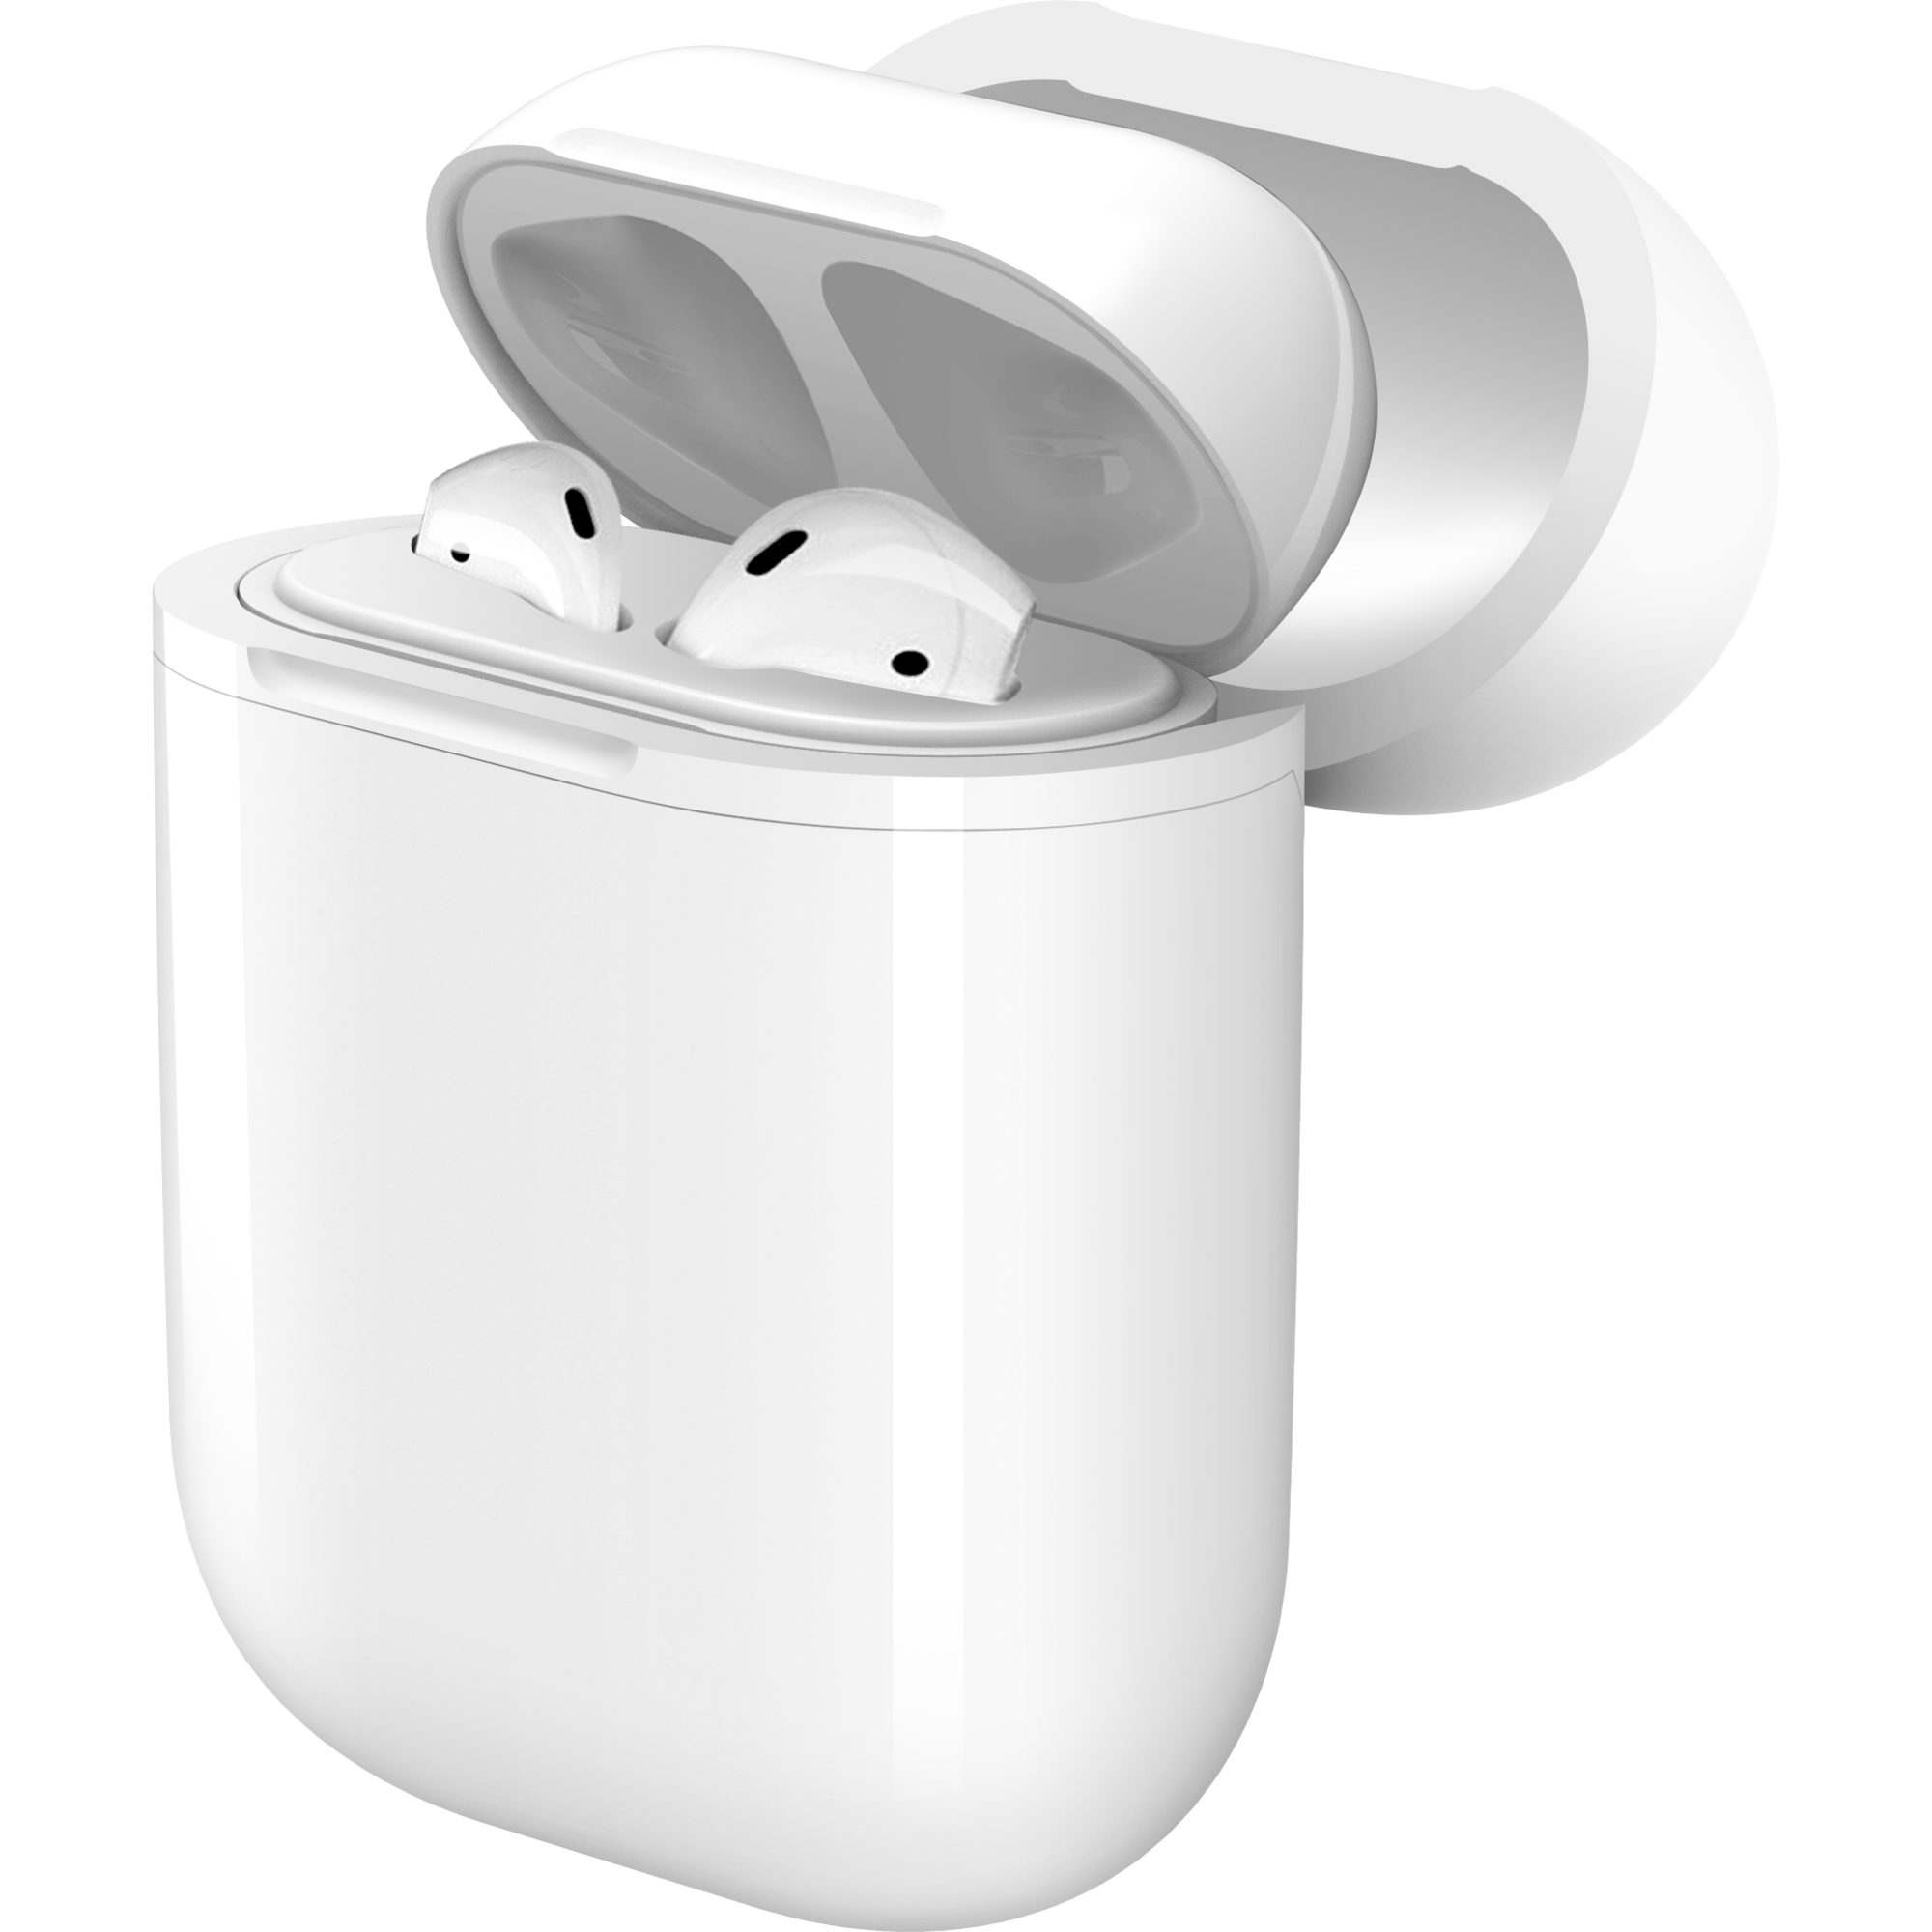 Airpods clipart mini. Wireless charger case for